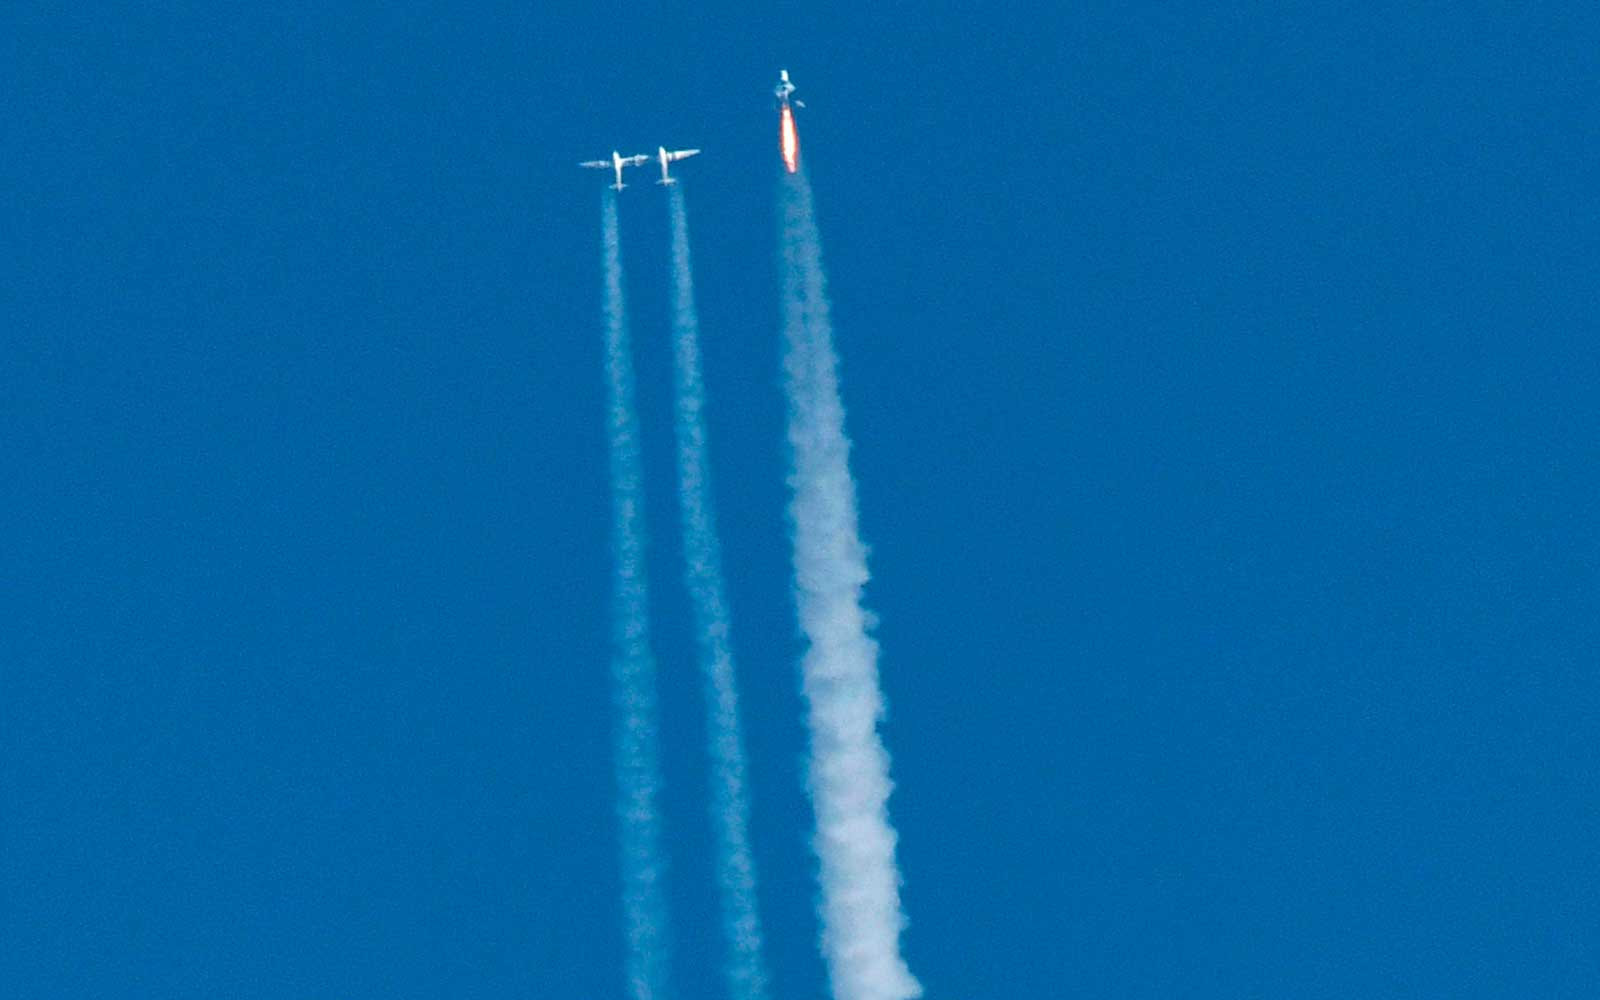 Virgin Galactic's VSS Unity launches for a suborbital test flight on December 13, 2018, in Mojave, California